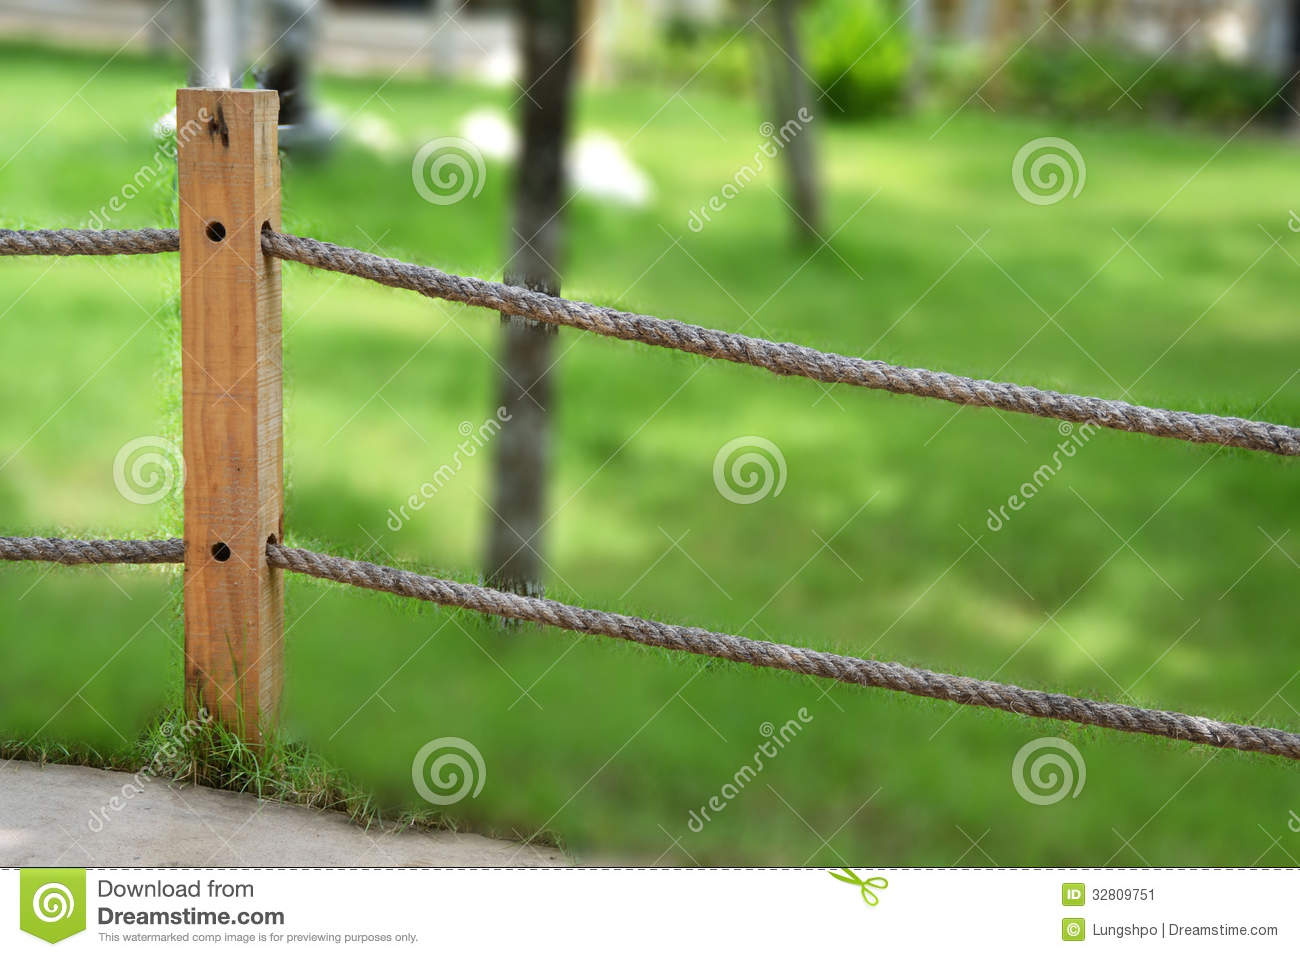 Rope fence in garden royalty free stock photo   image: 24910005